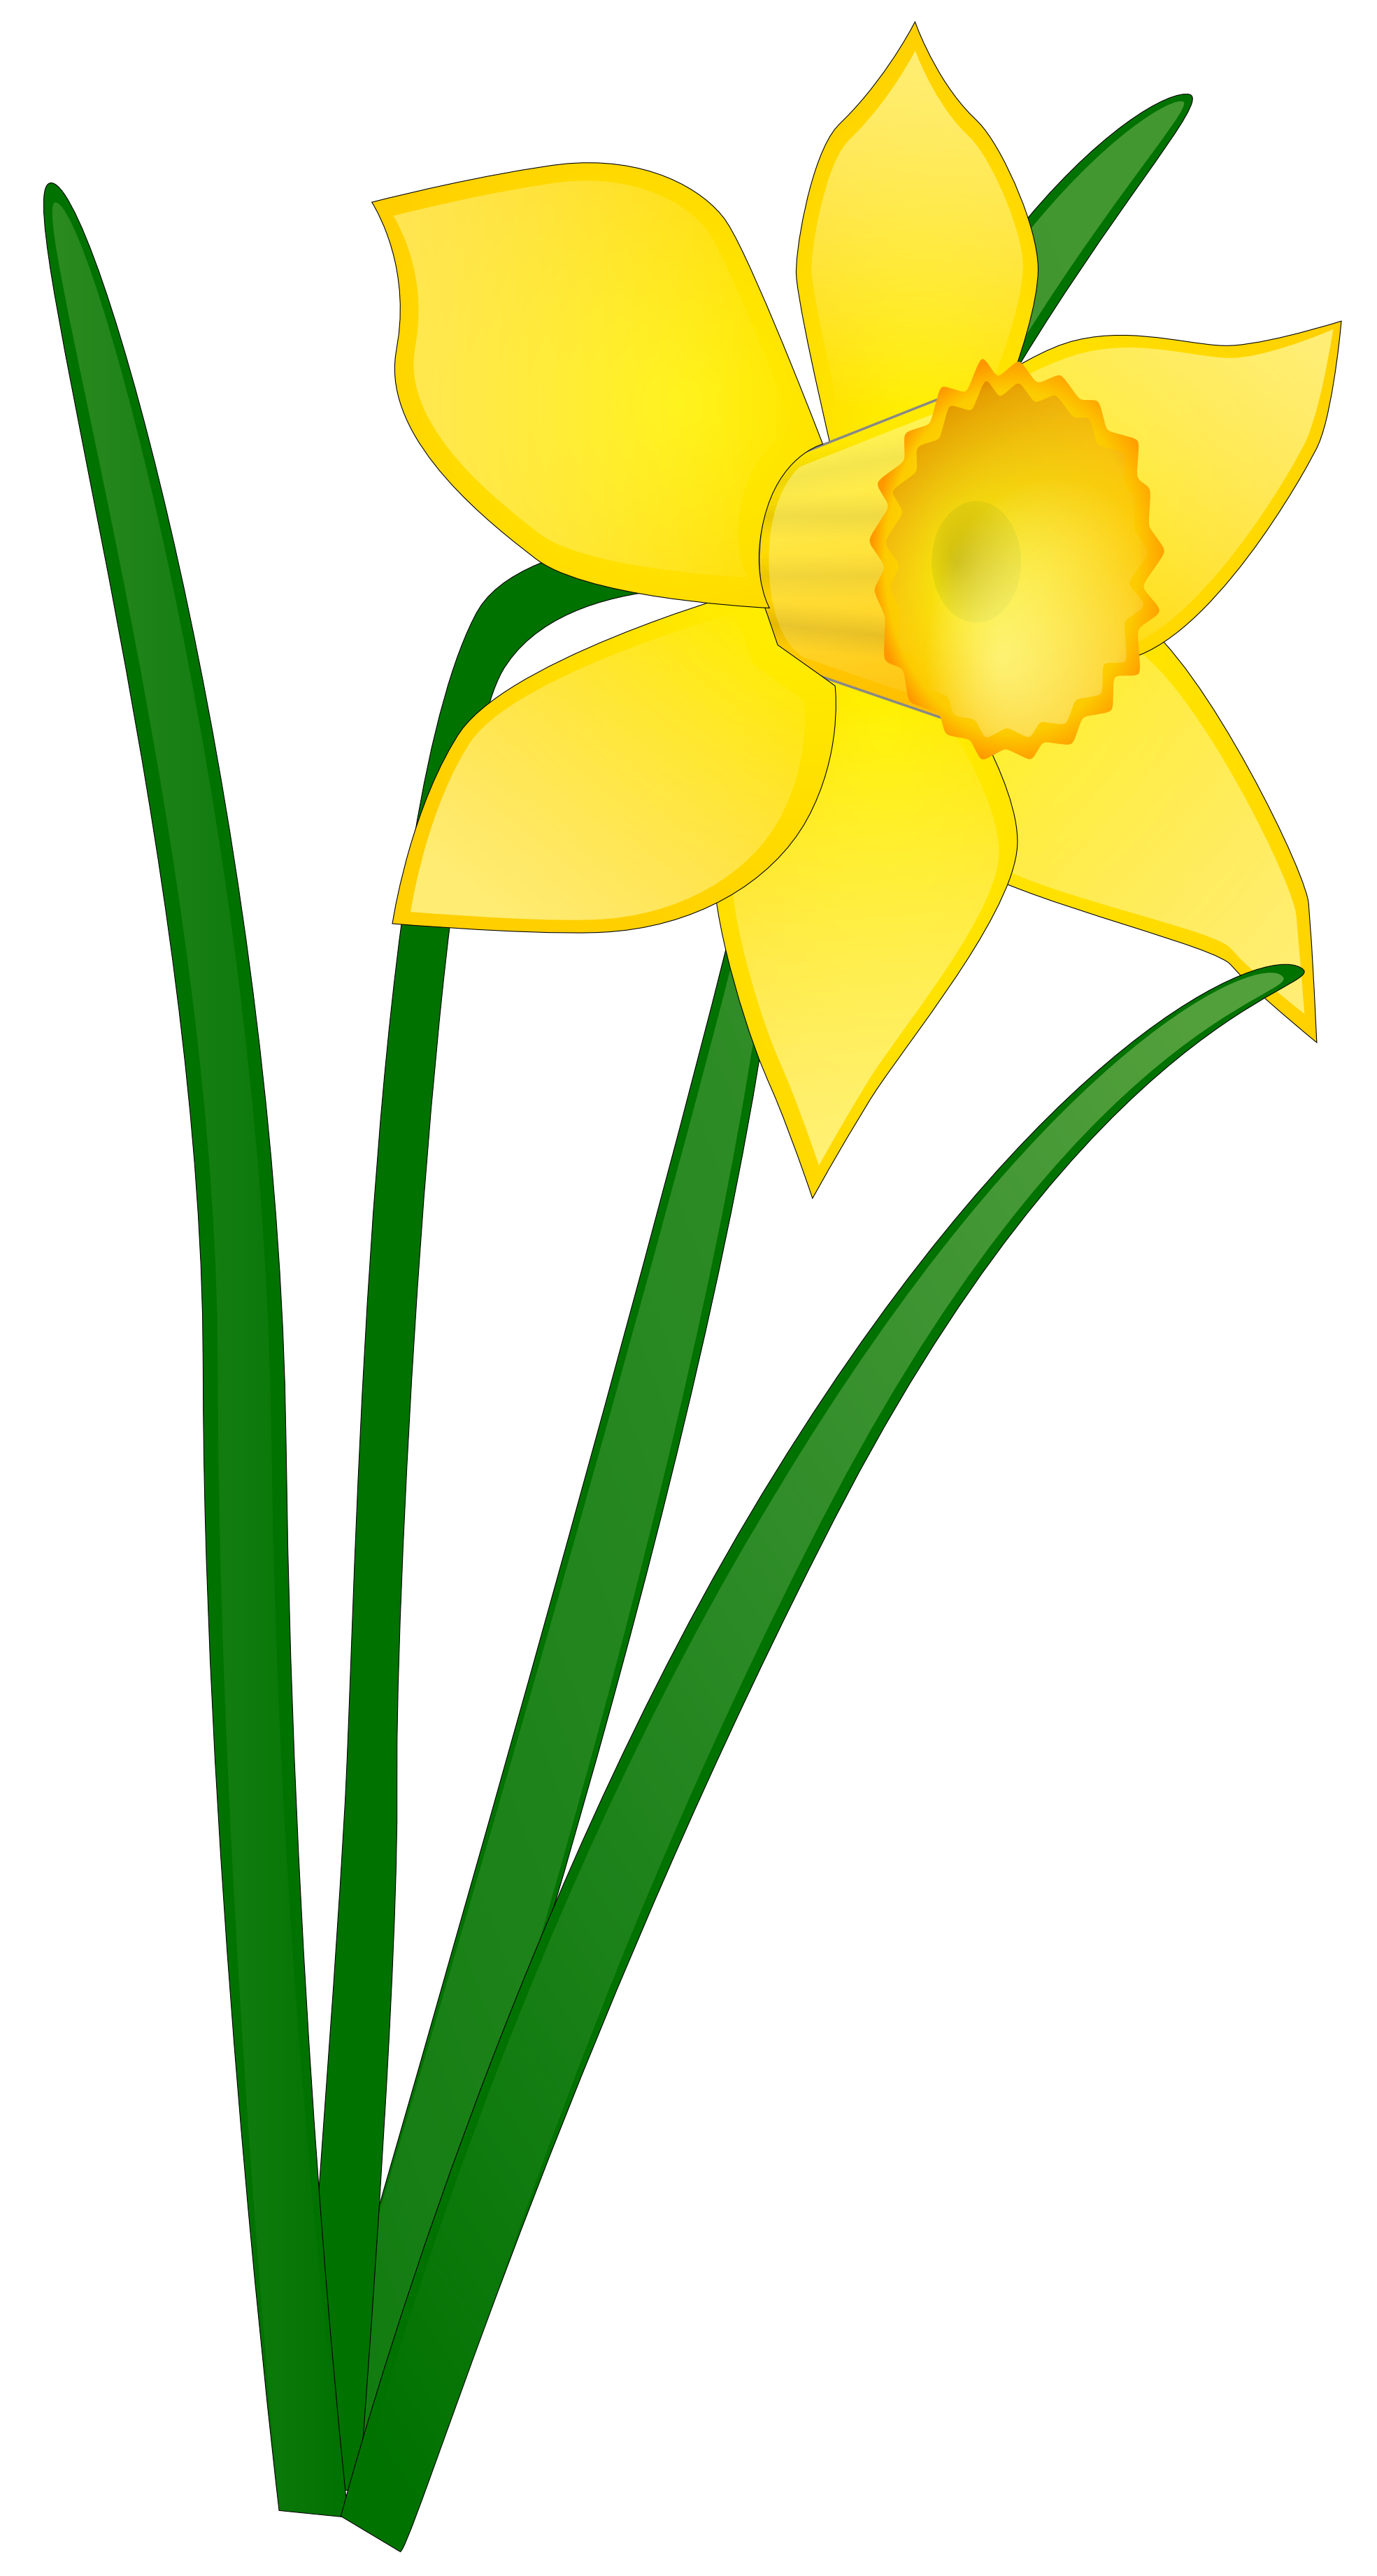 Flower clip art panda. Daffodil clipart illustration png transparent stock